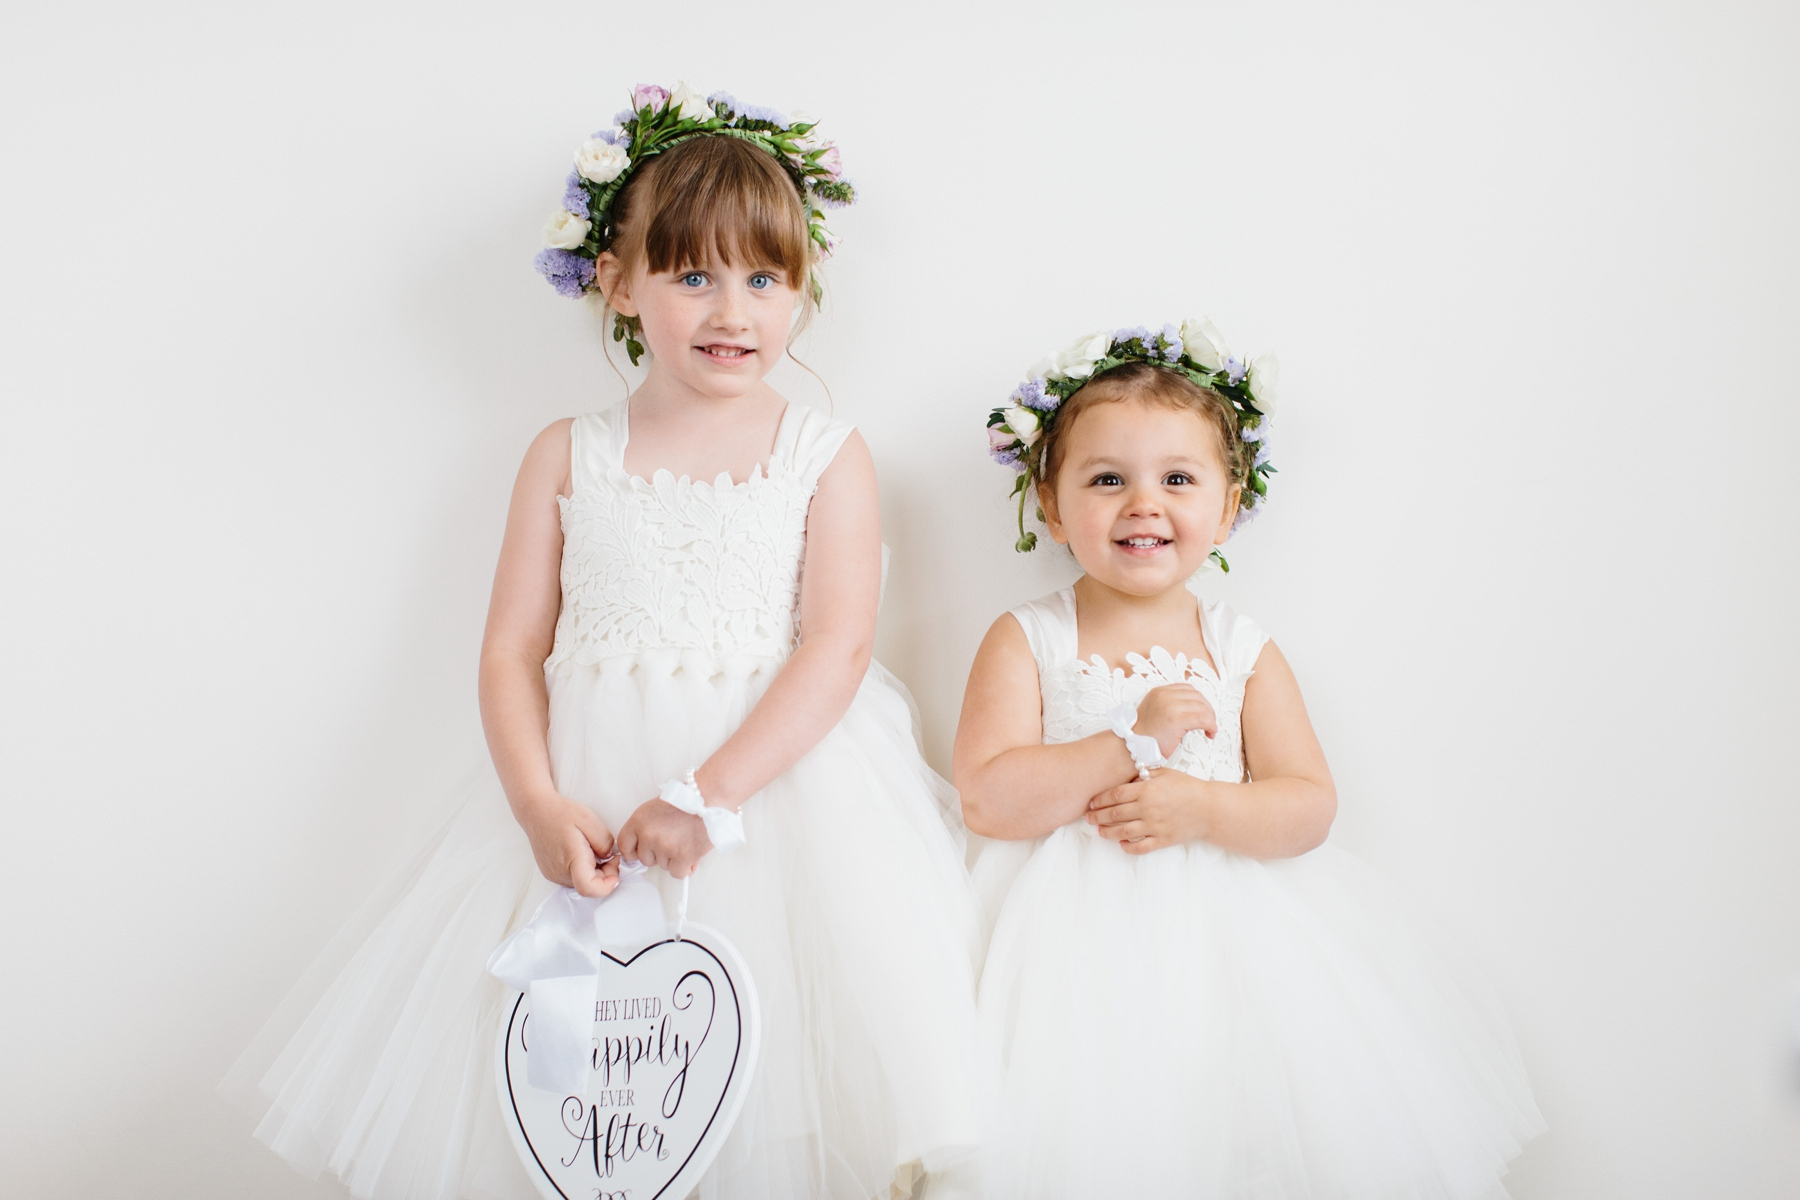 flower girls with purple flower crowns